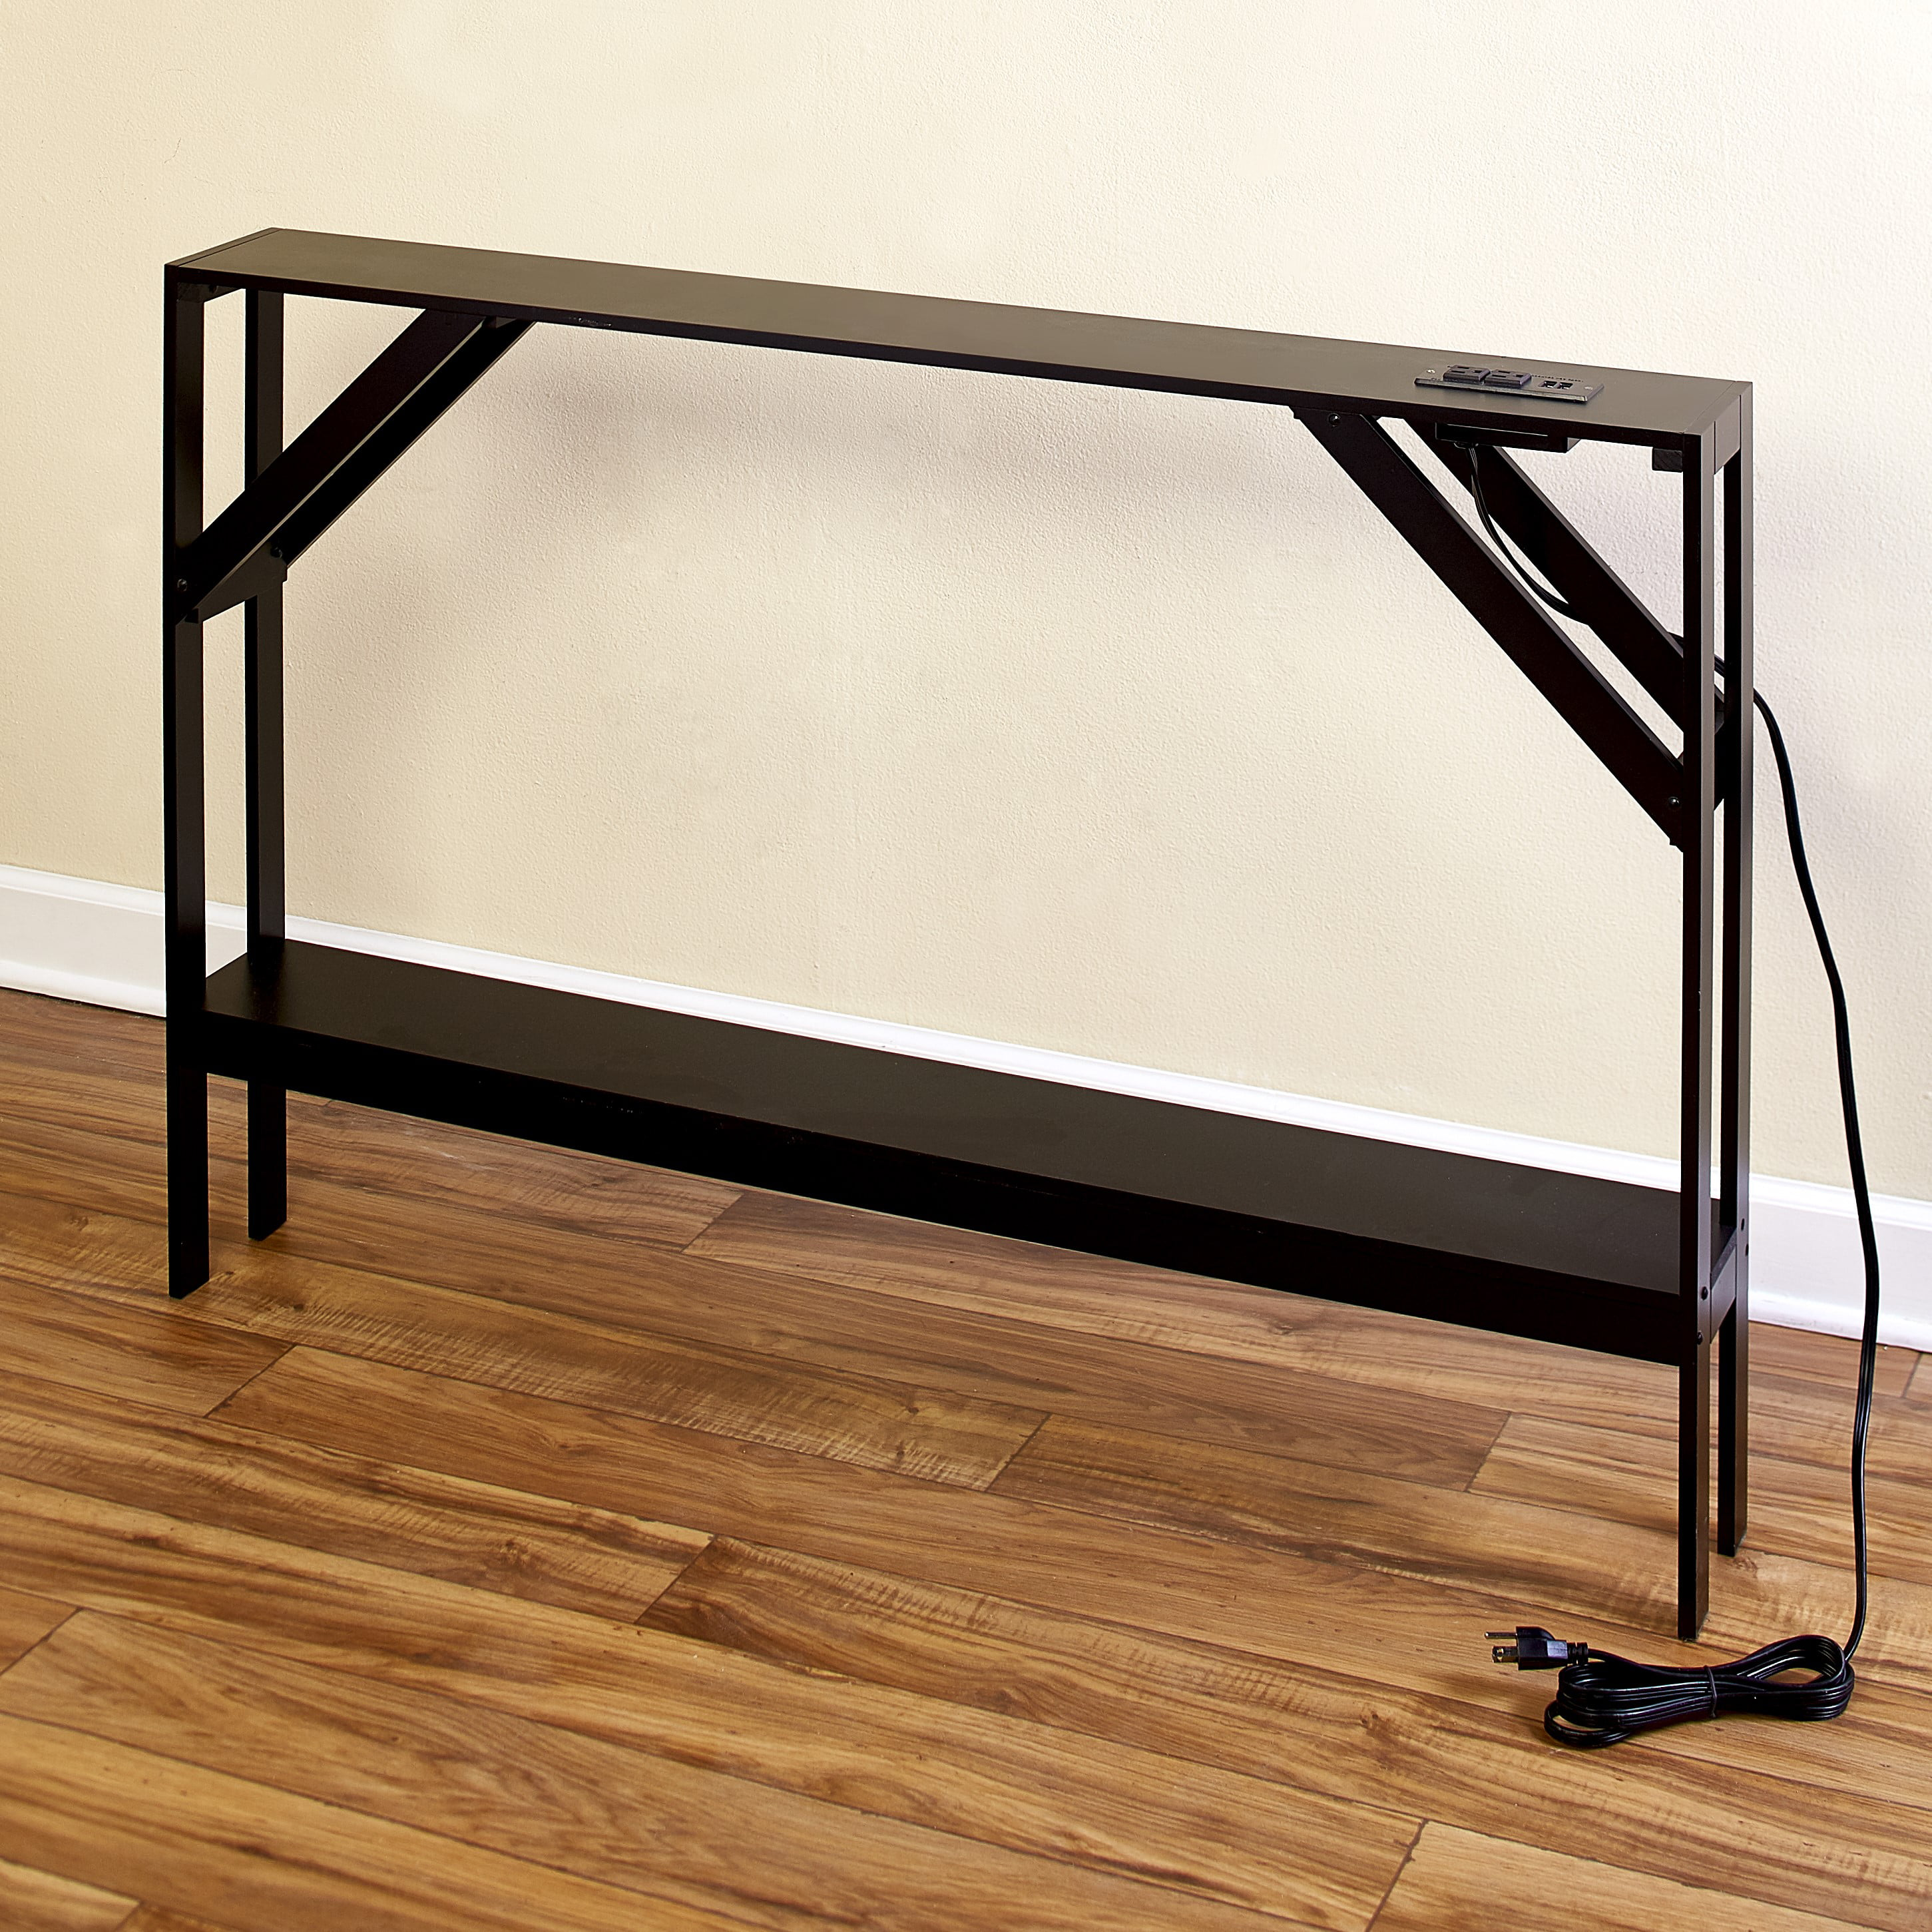 Skinny Sofa Table With Outlet For Phones And Laptops Modern Accent Table Walmart Com Walmart Com